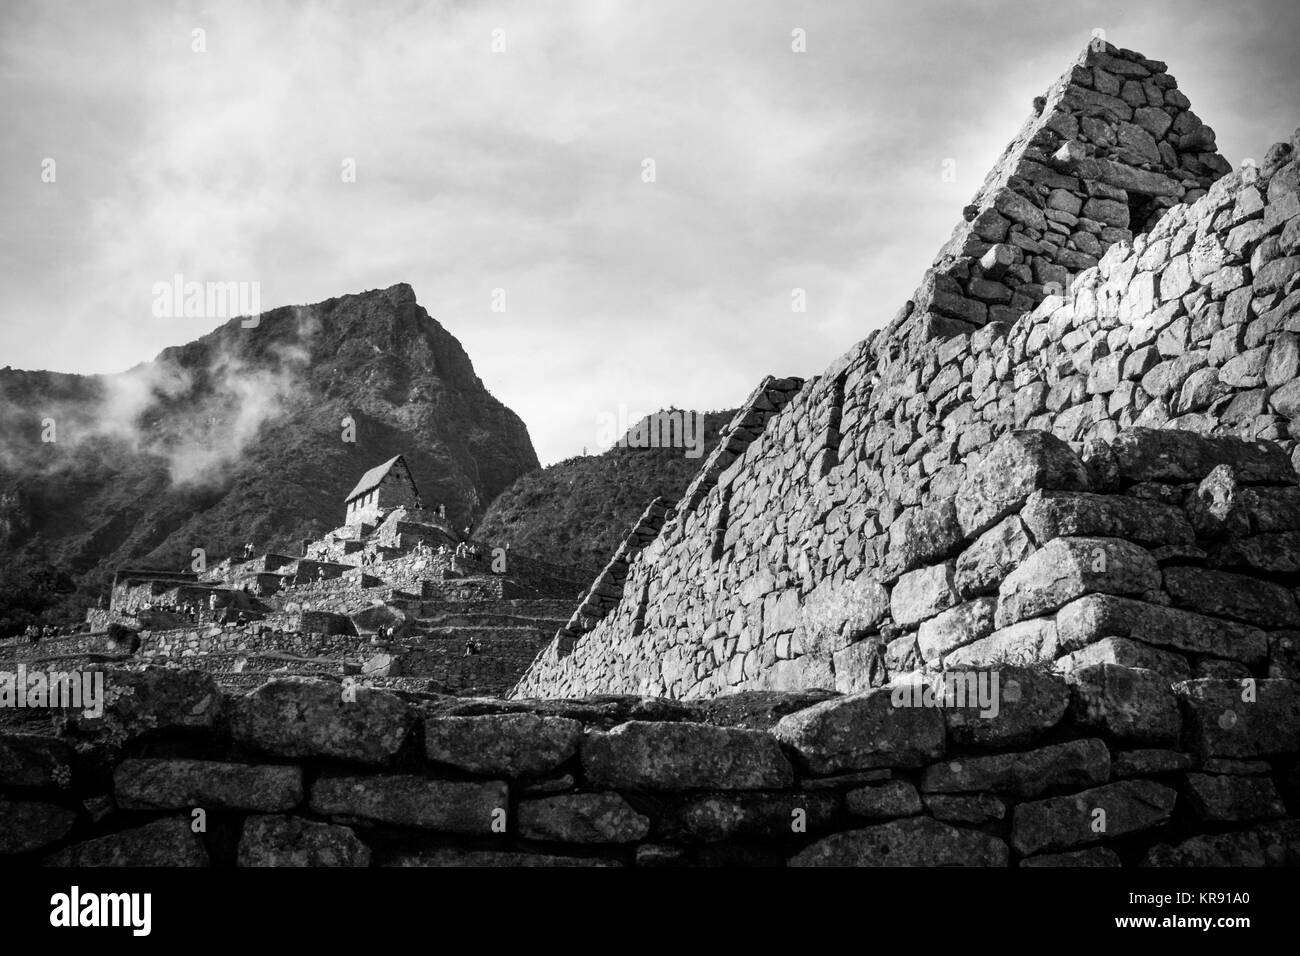 Guardian's house in black and white in Machu Picchu, Cuzco, Peru - Stock Image